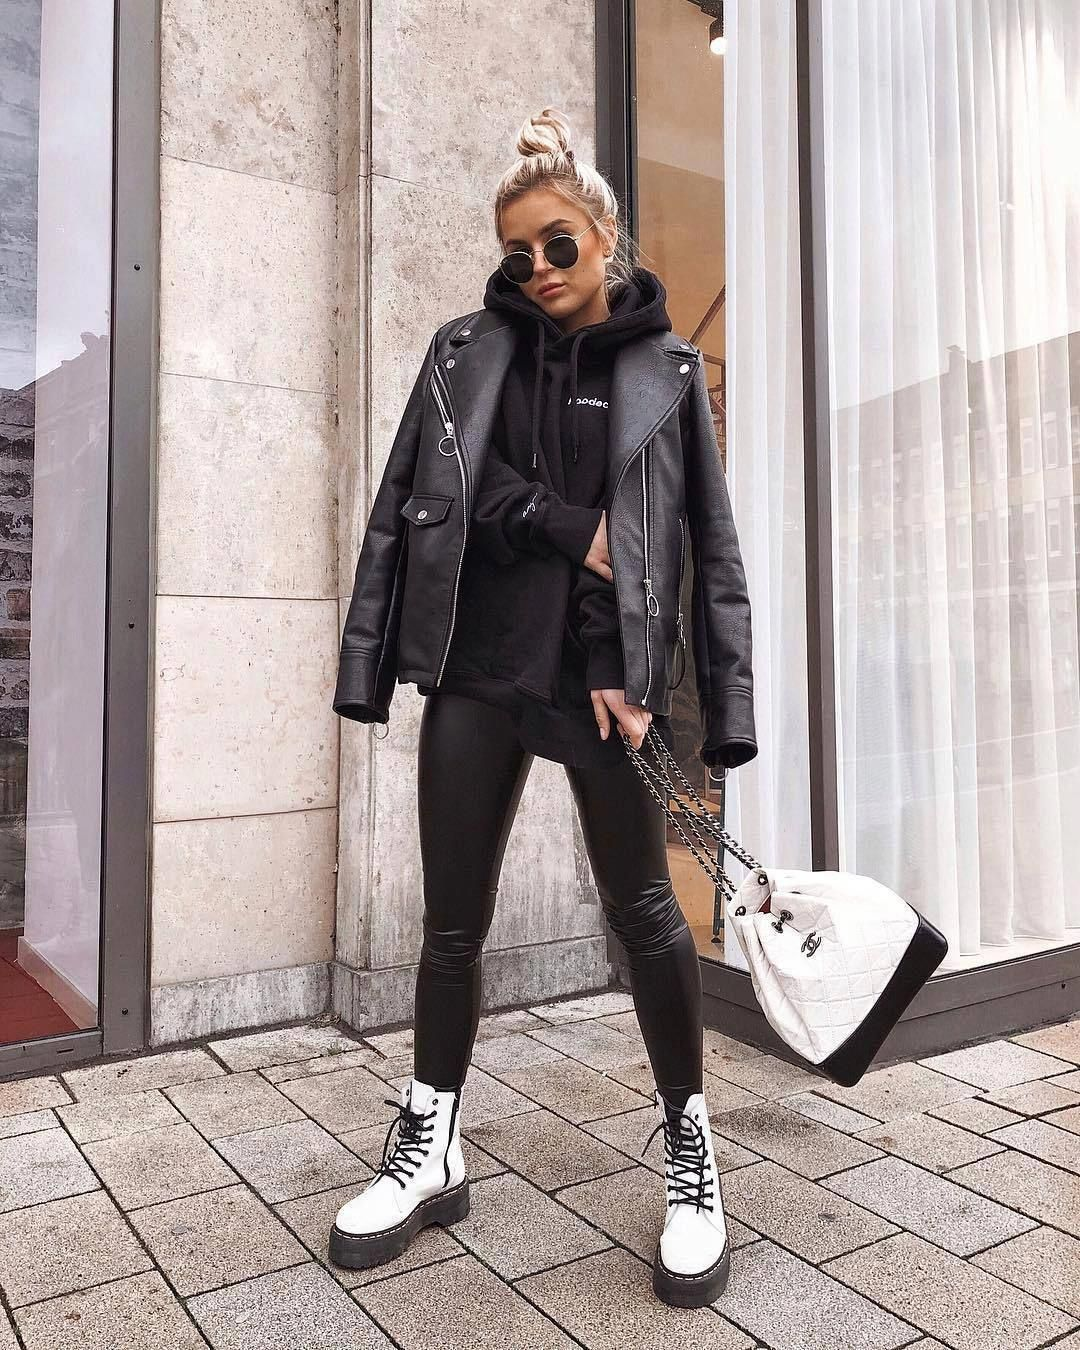 Find Out Where To Get The Bag Drmartensboots Chloe Aesthetic In